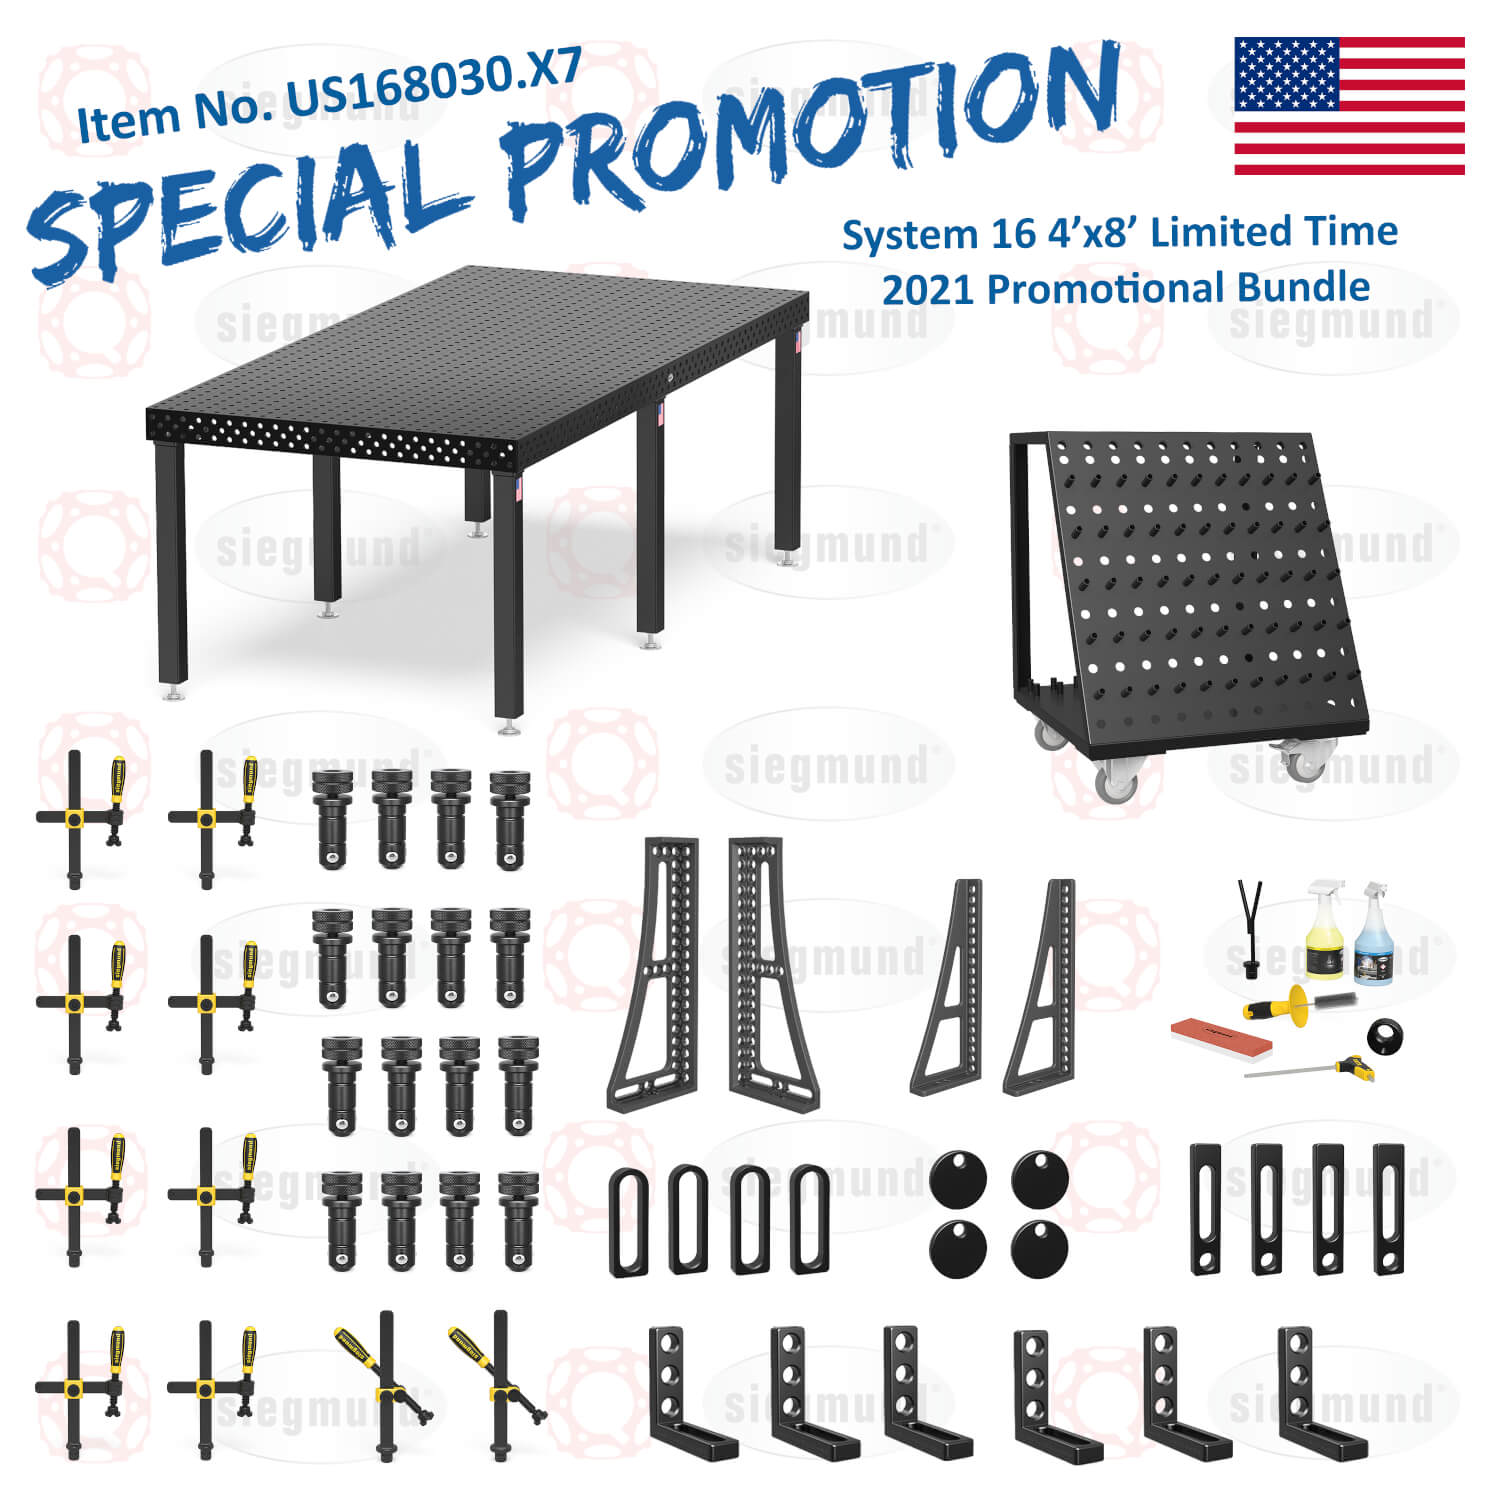 US168030.X7: System 16 4'x8' Imperial Series (Inch) Welding Table Bundle (2021 SPECIAL PROMOTION)